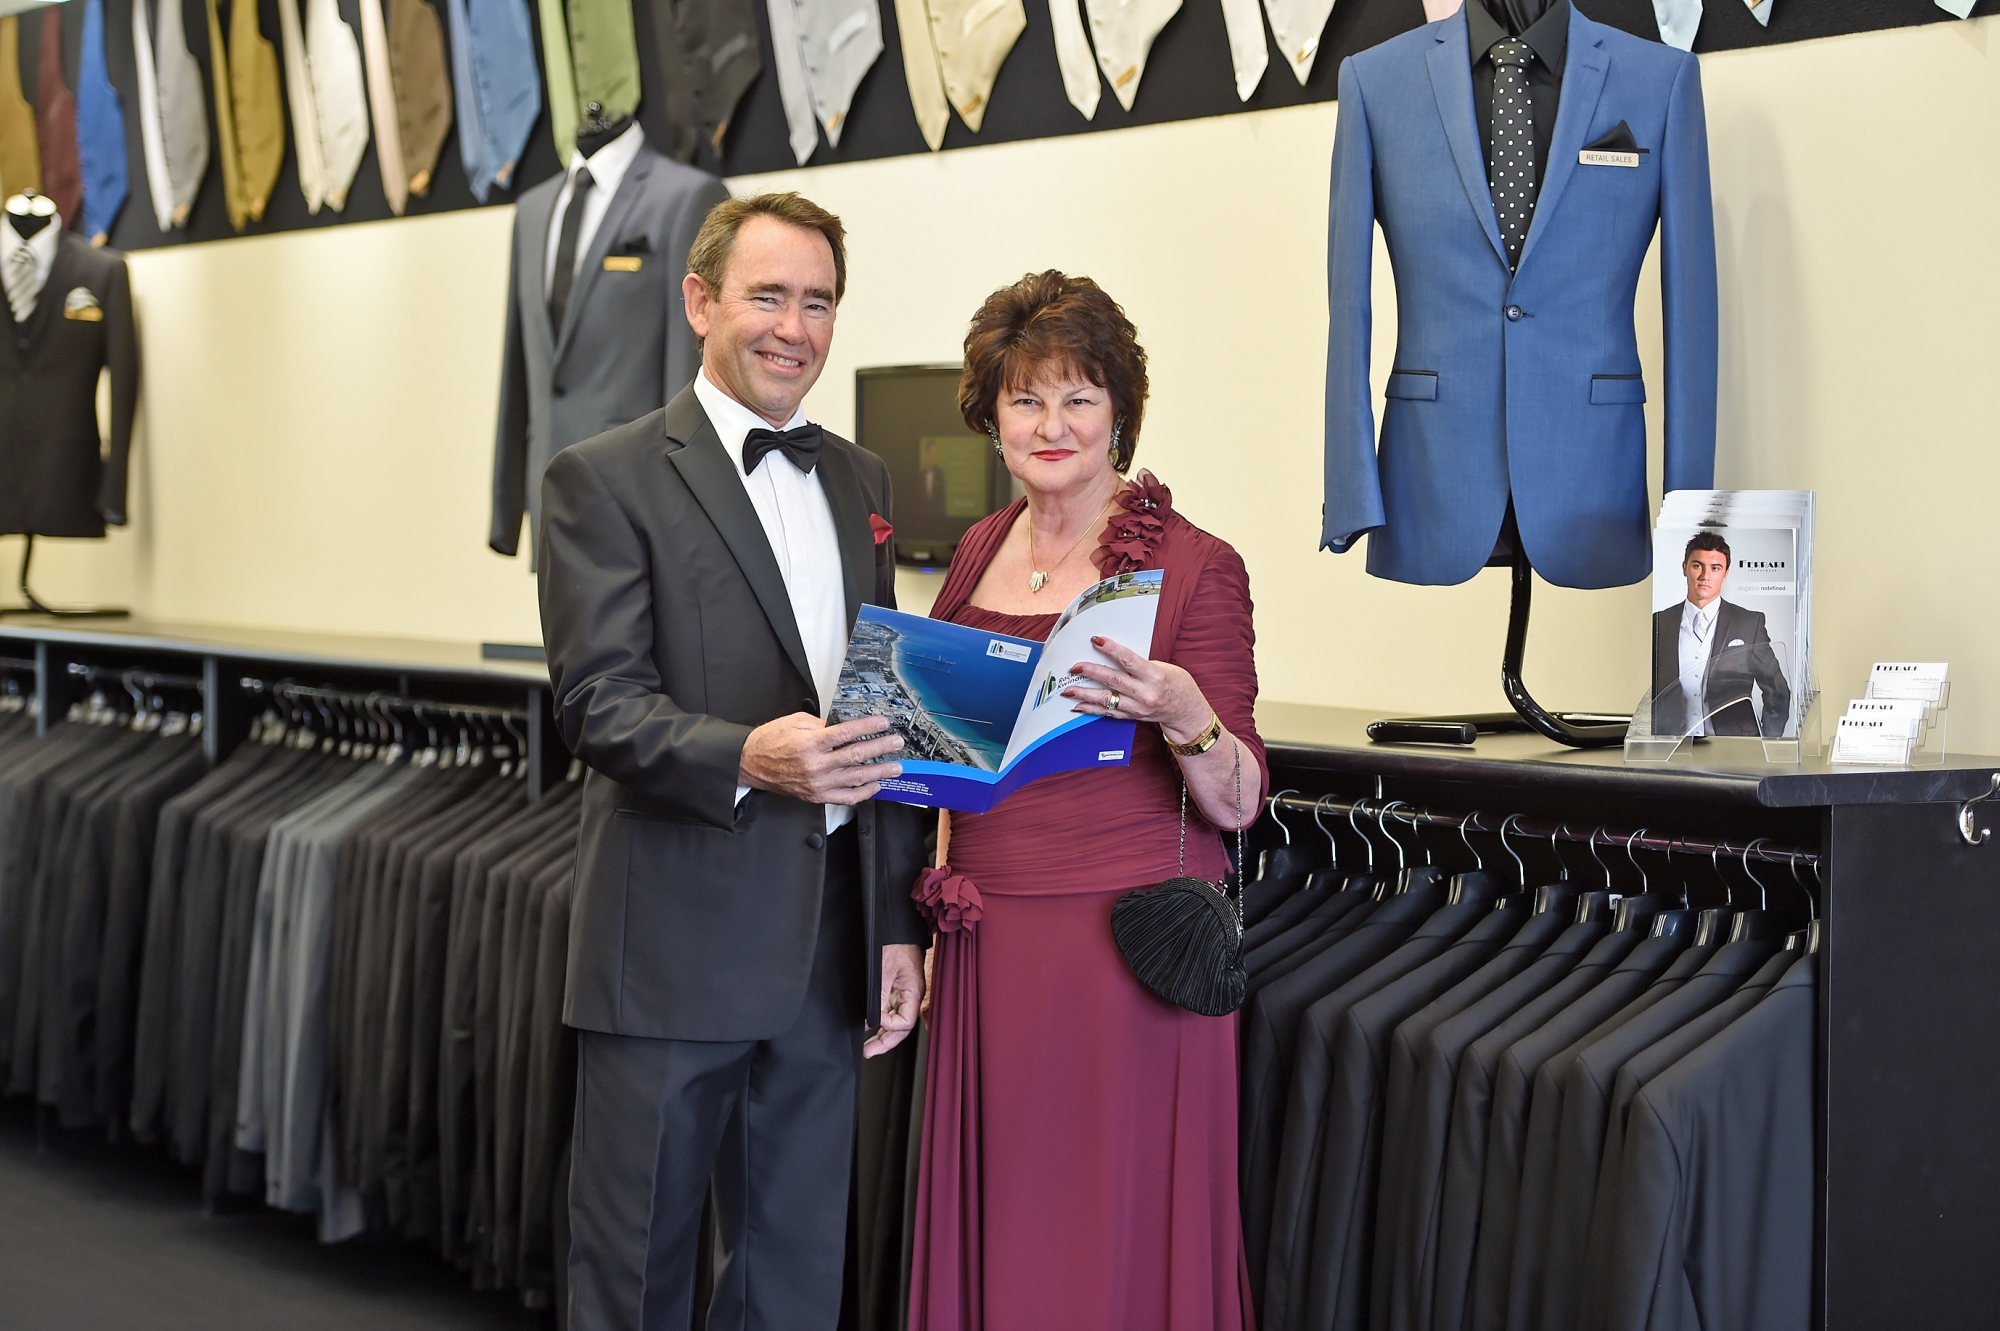 Chief executive of the Rockingham Kwinana Chamber of Commerce Tony Solin with chairwoman of judges for the awards Dale Kerferd. Picture: Jon Hewson d419779